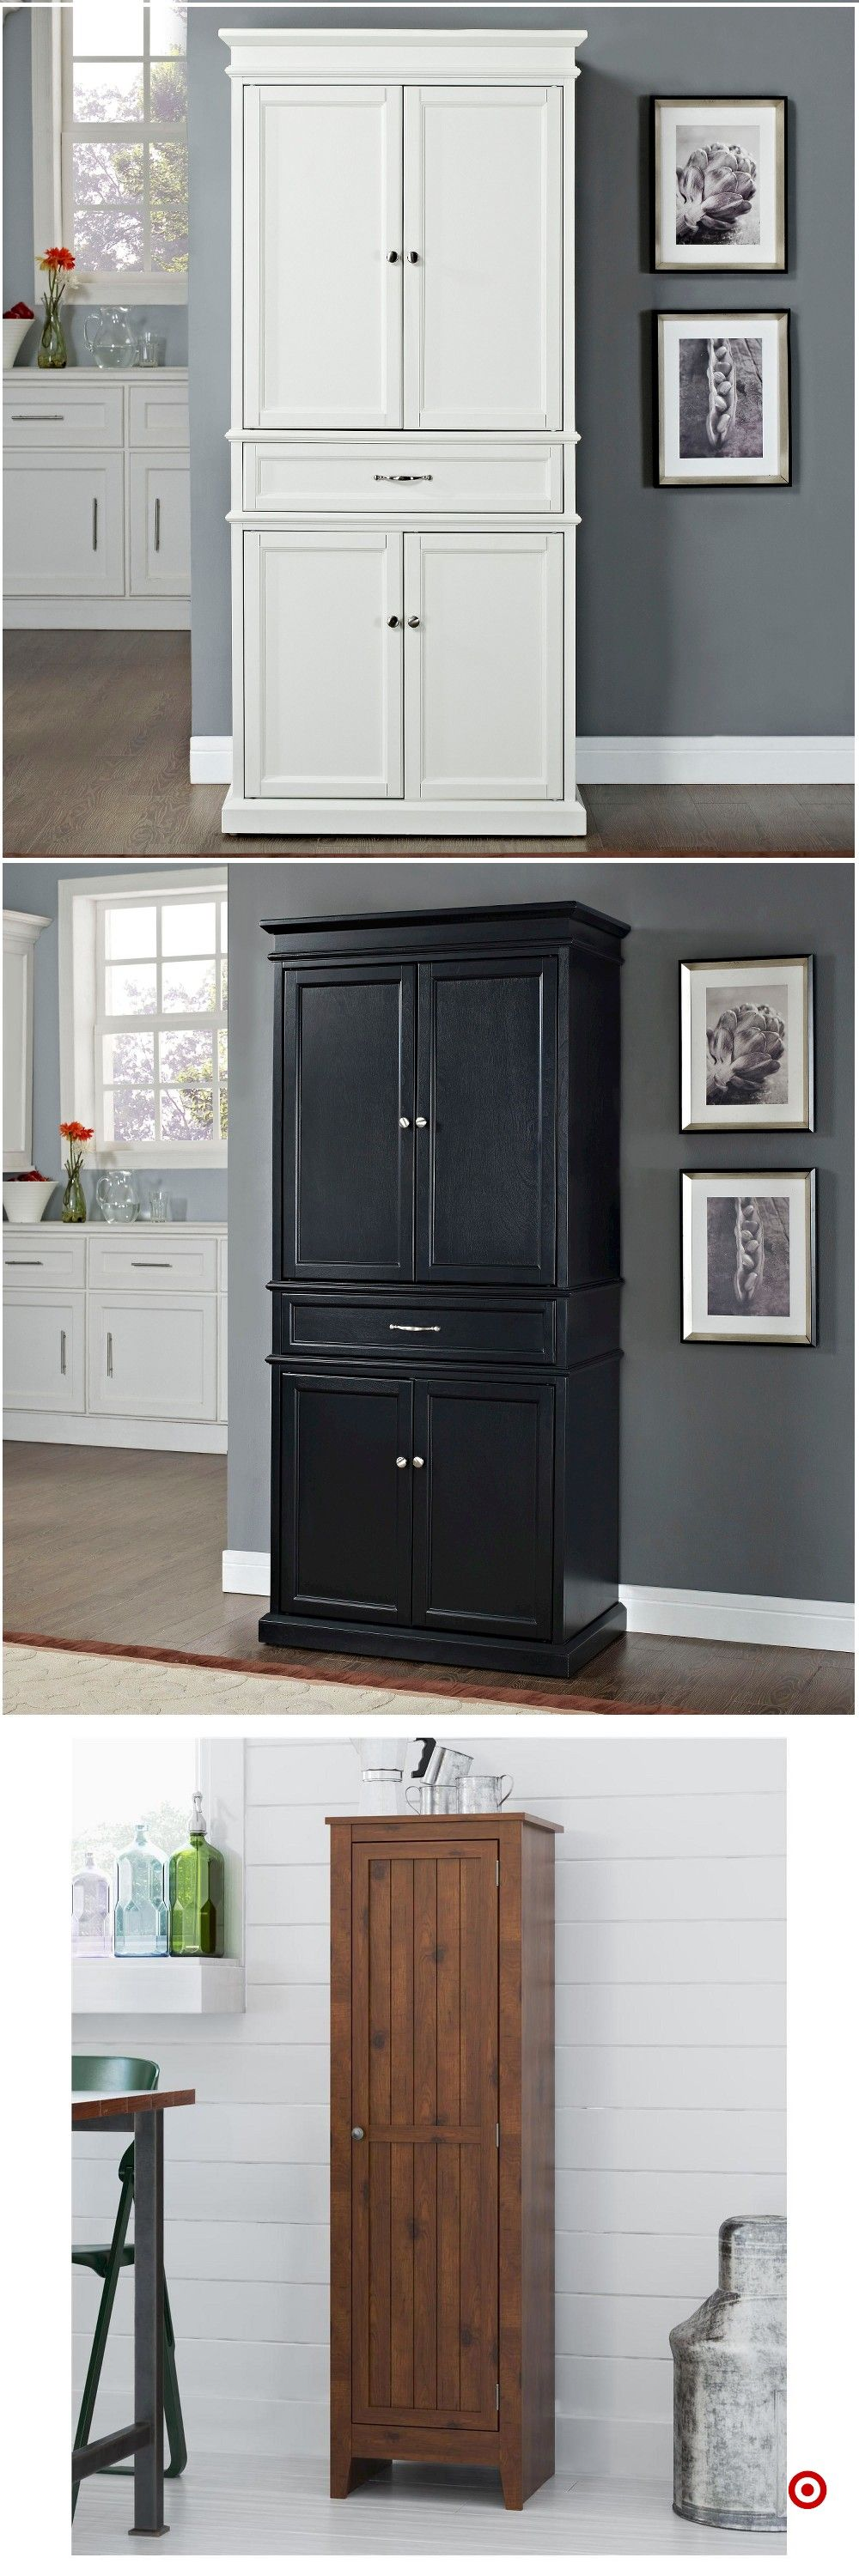 Shop Target For Kitchen Storage Pantry You Will Love At Great Low Prices Free Shipping On Orders Of 35 Or Free Interior Design Kitchen Kitchen Storage Home